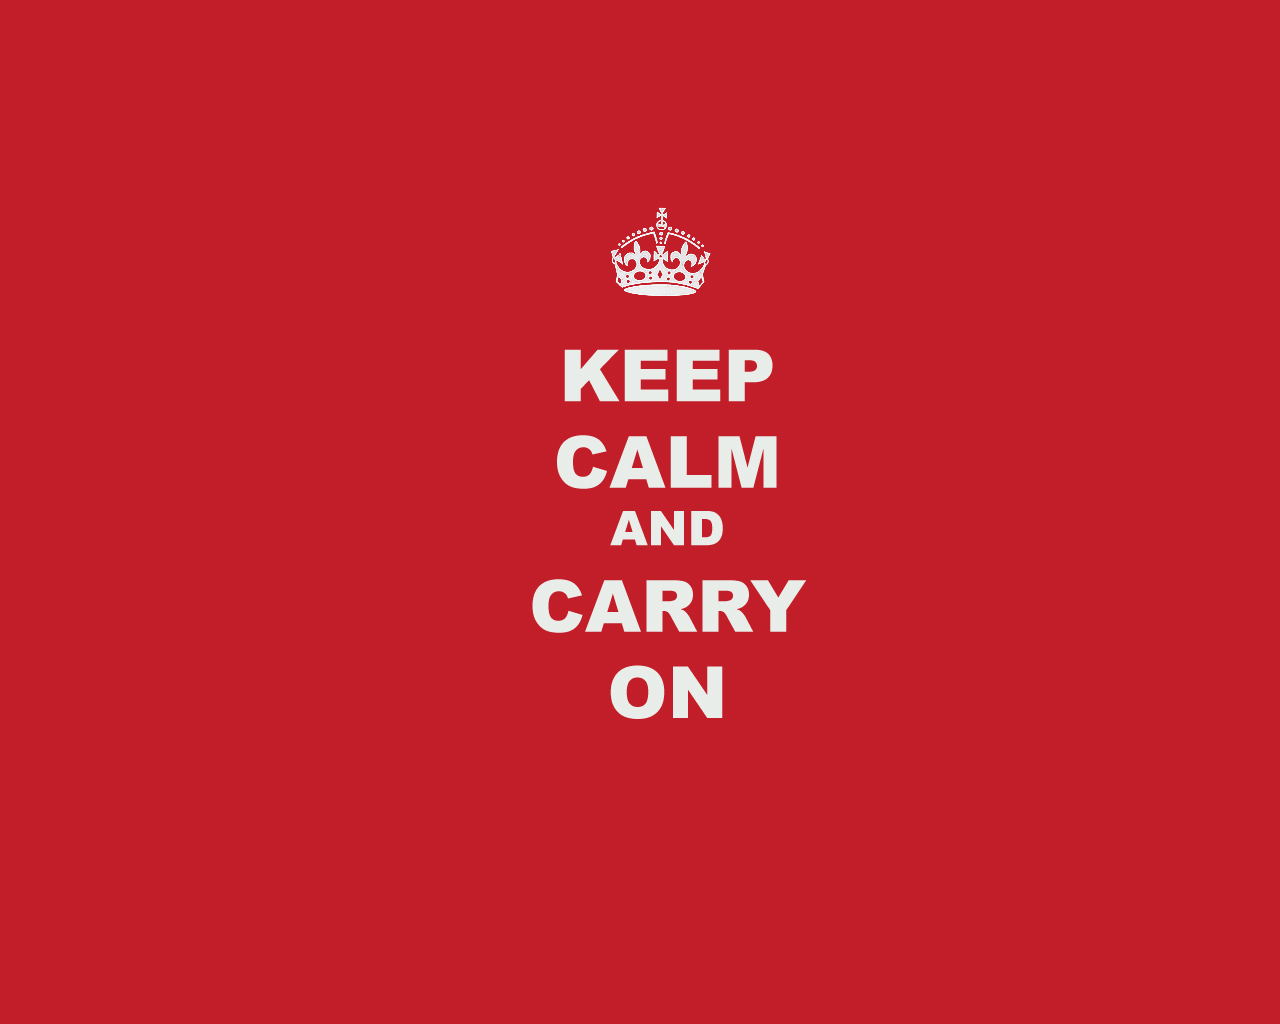 Emergency Budget: Keep calm and carry on